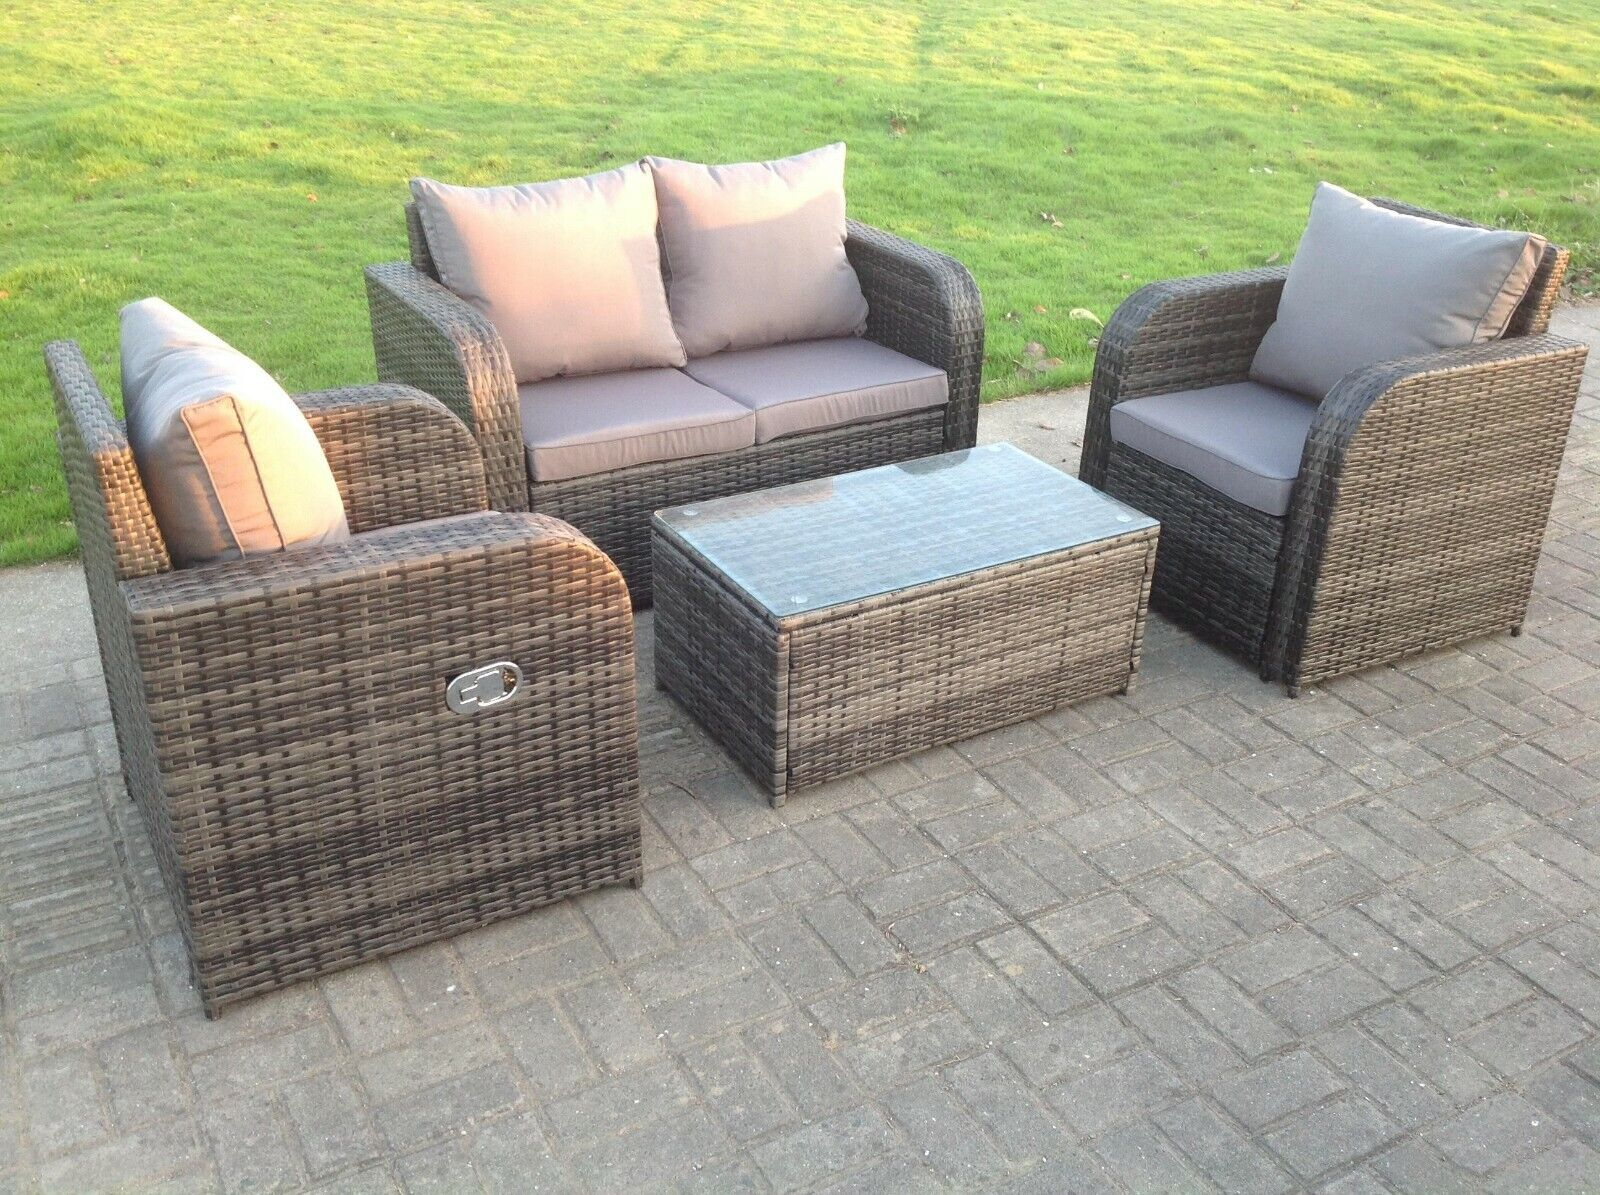 Garden Furniture - 4 Seater Reclining Grey Mixed Rattan Sofa Chair Outdoor Garden Furniture Sets